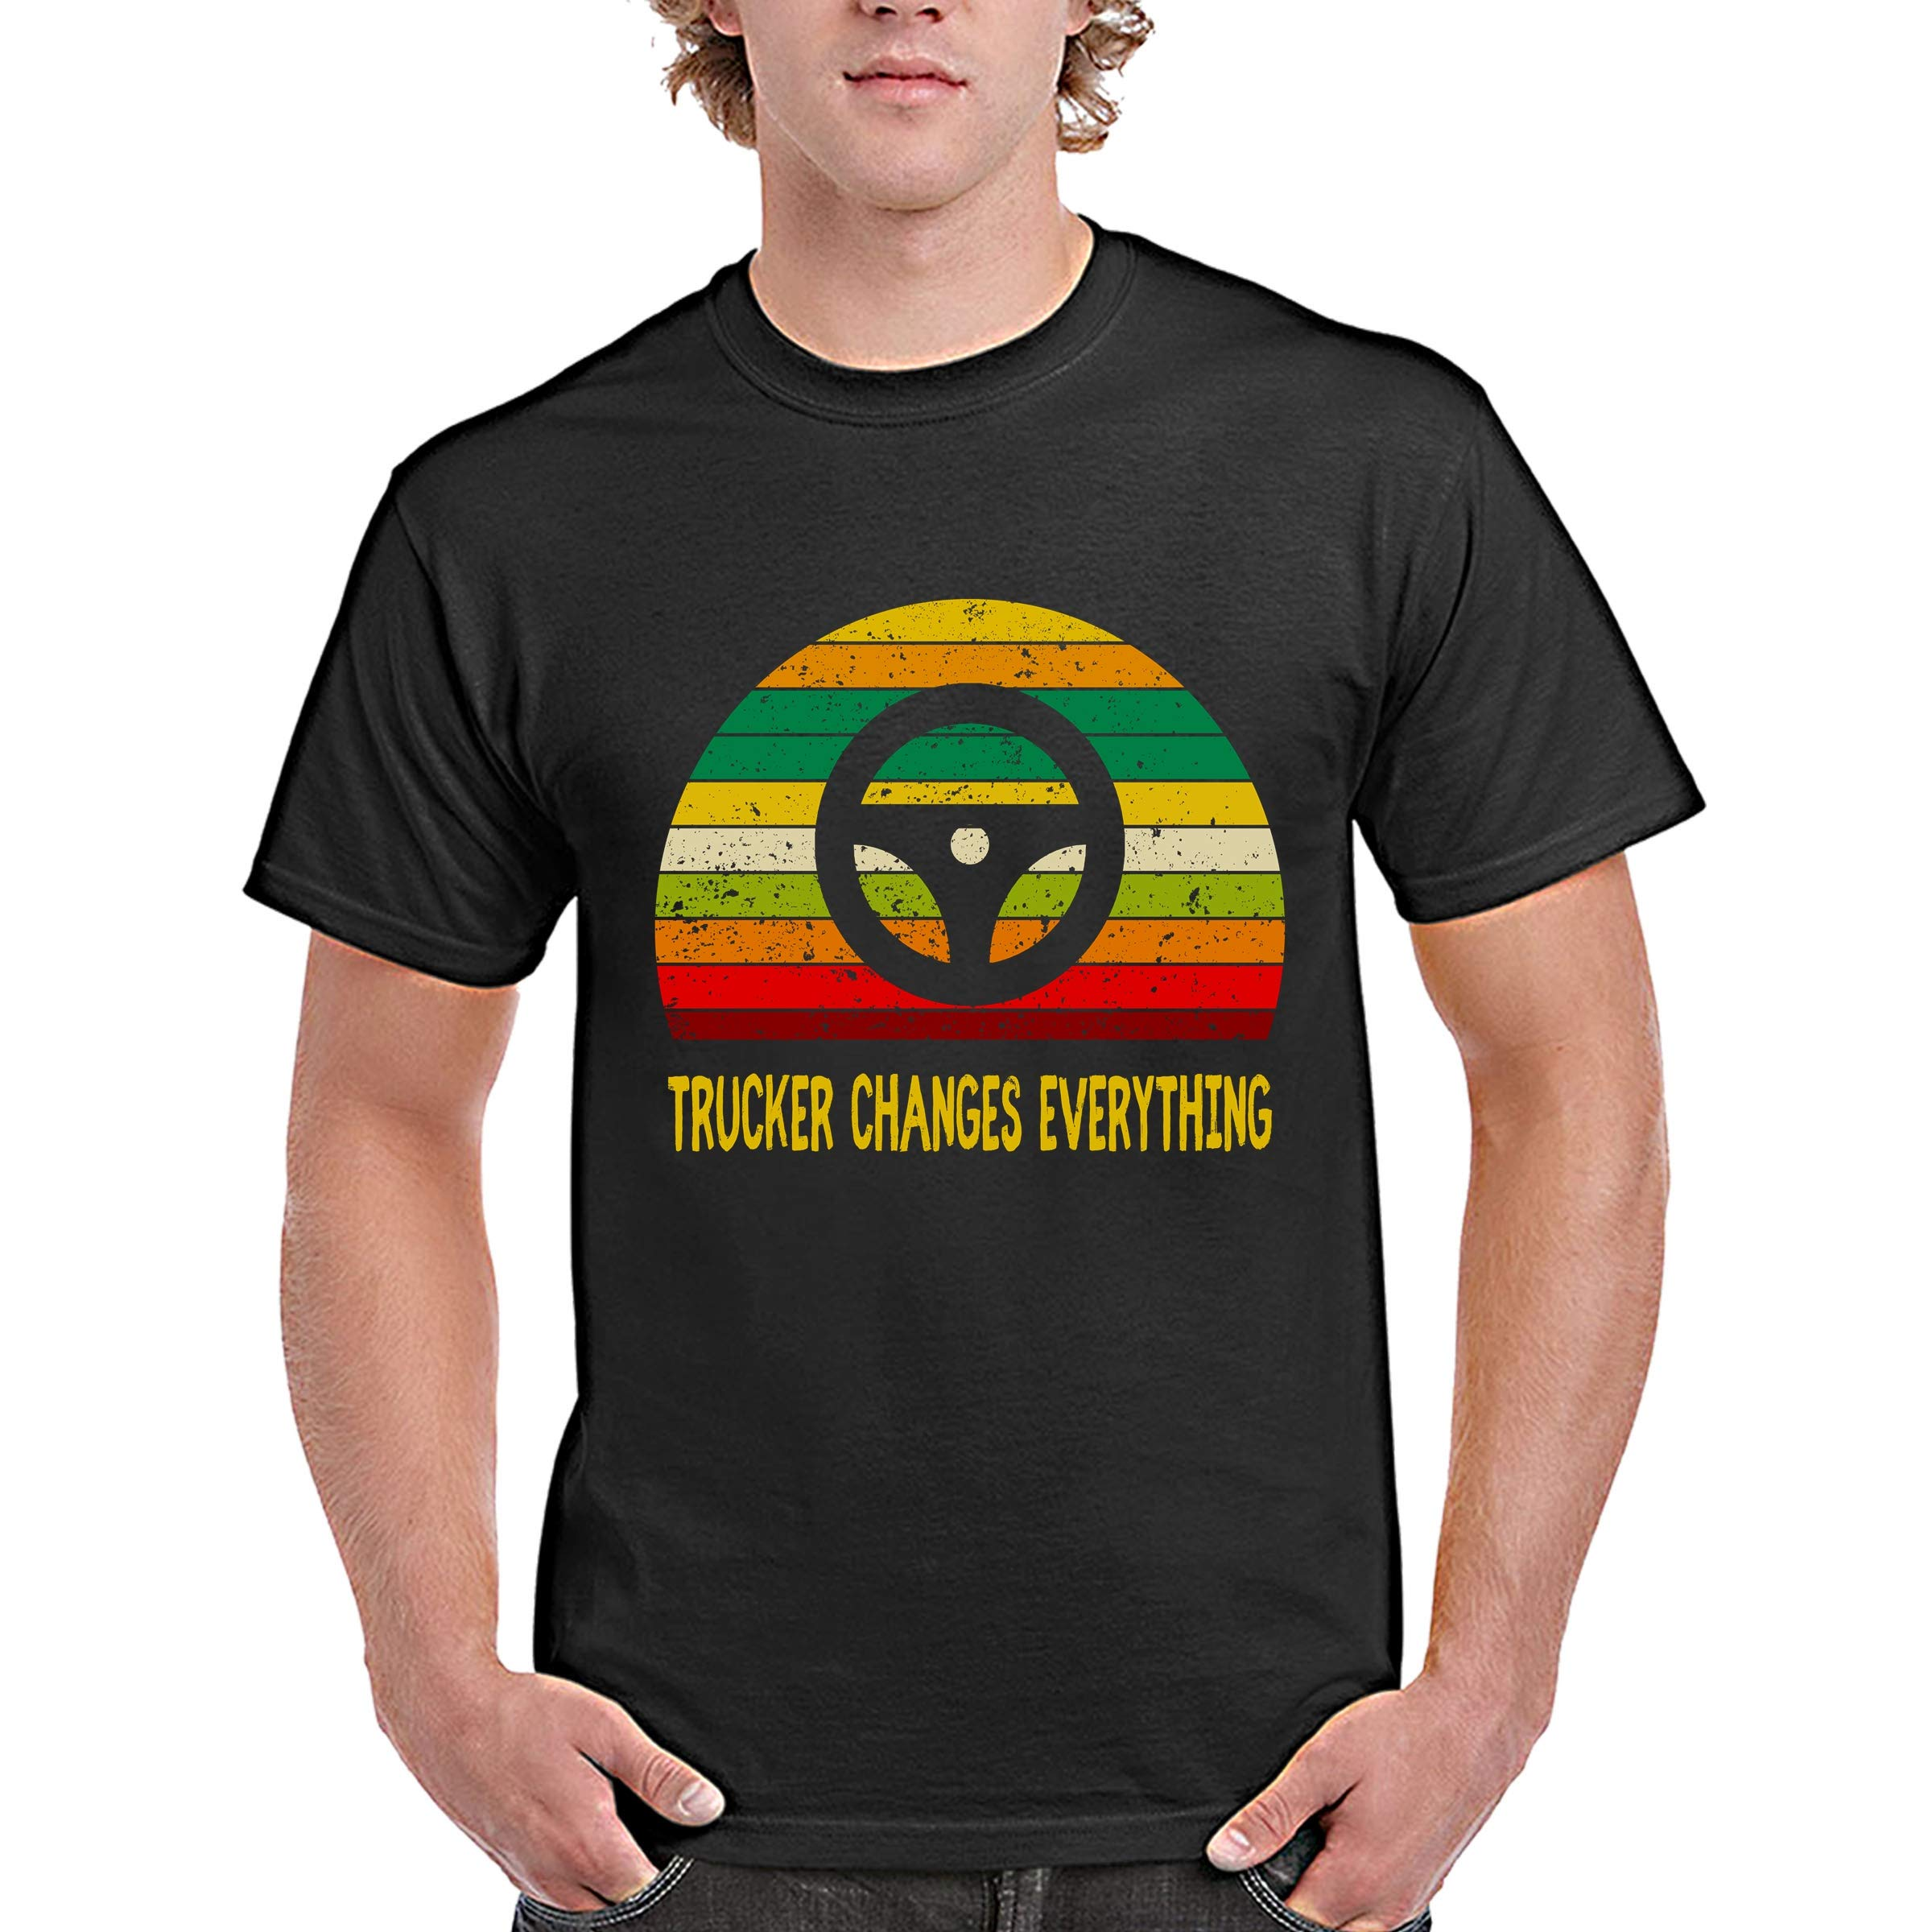 Funny Trucker Vintage Retro Tshirt Trucker Changes Everything For